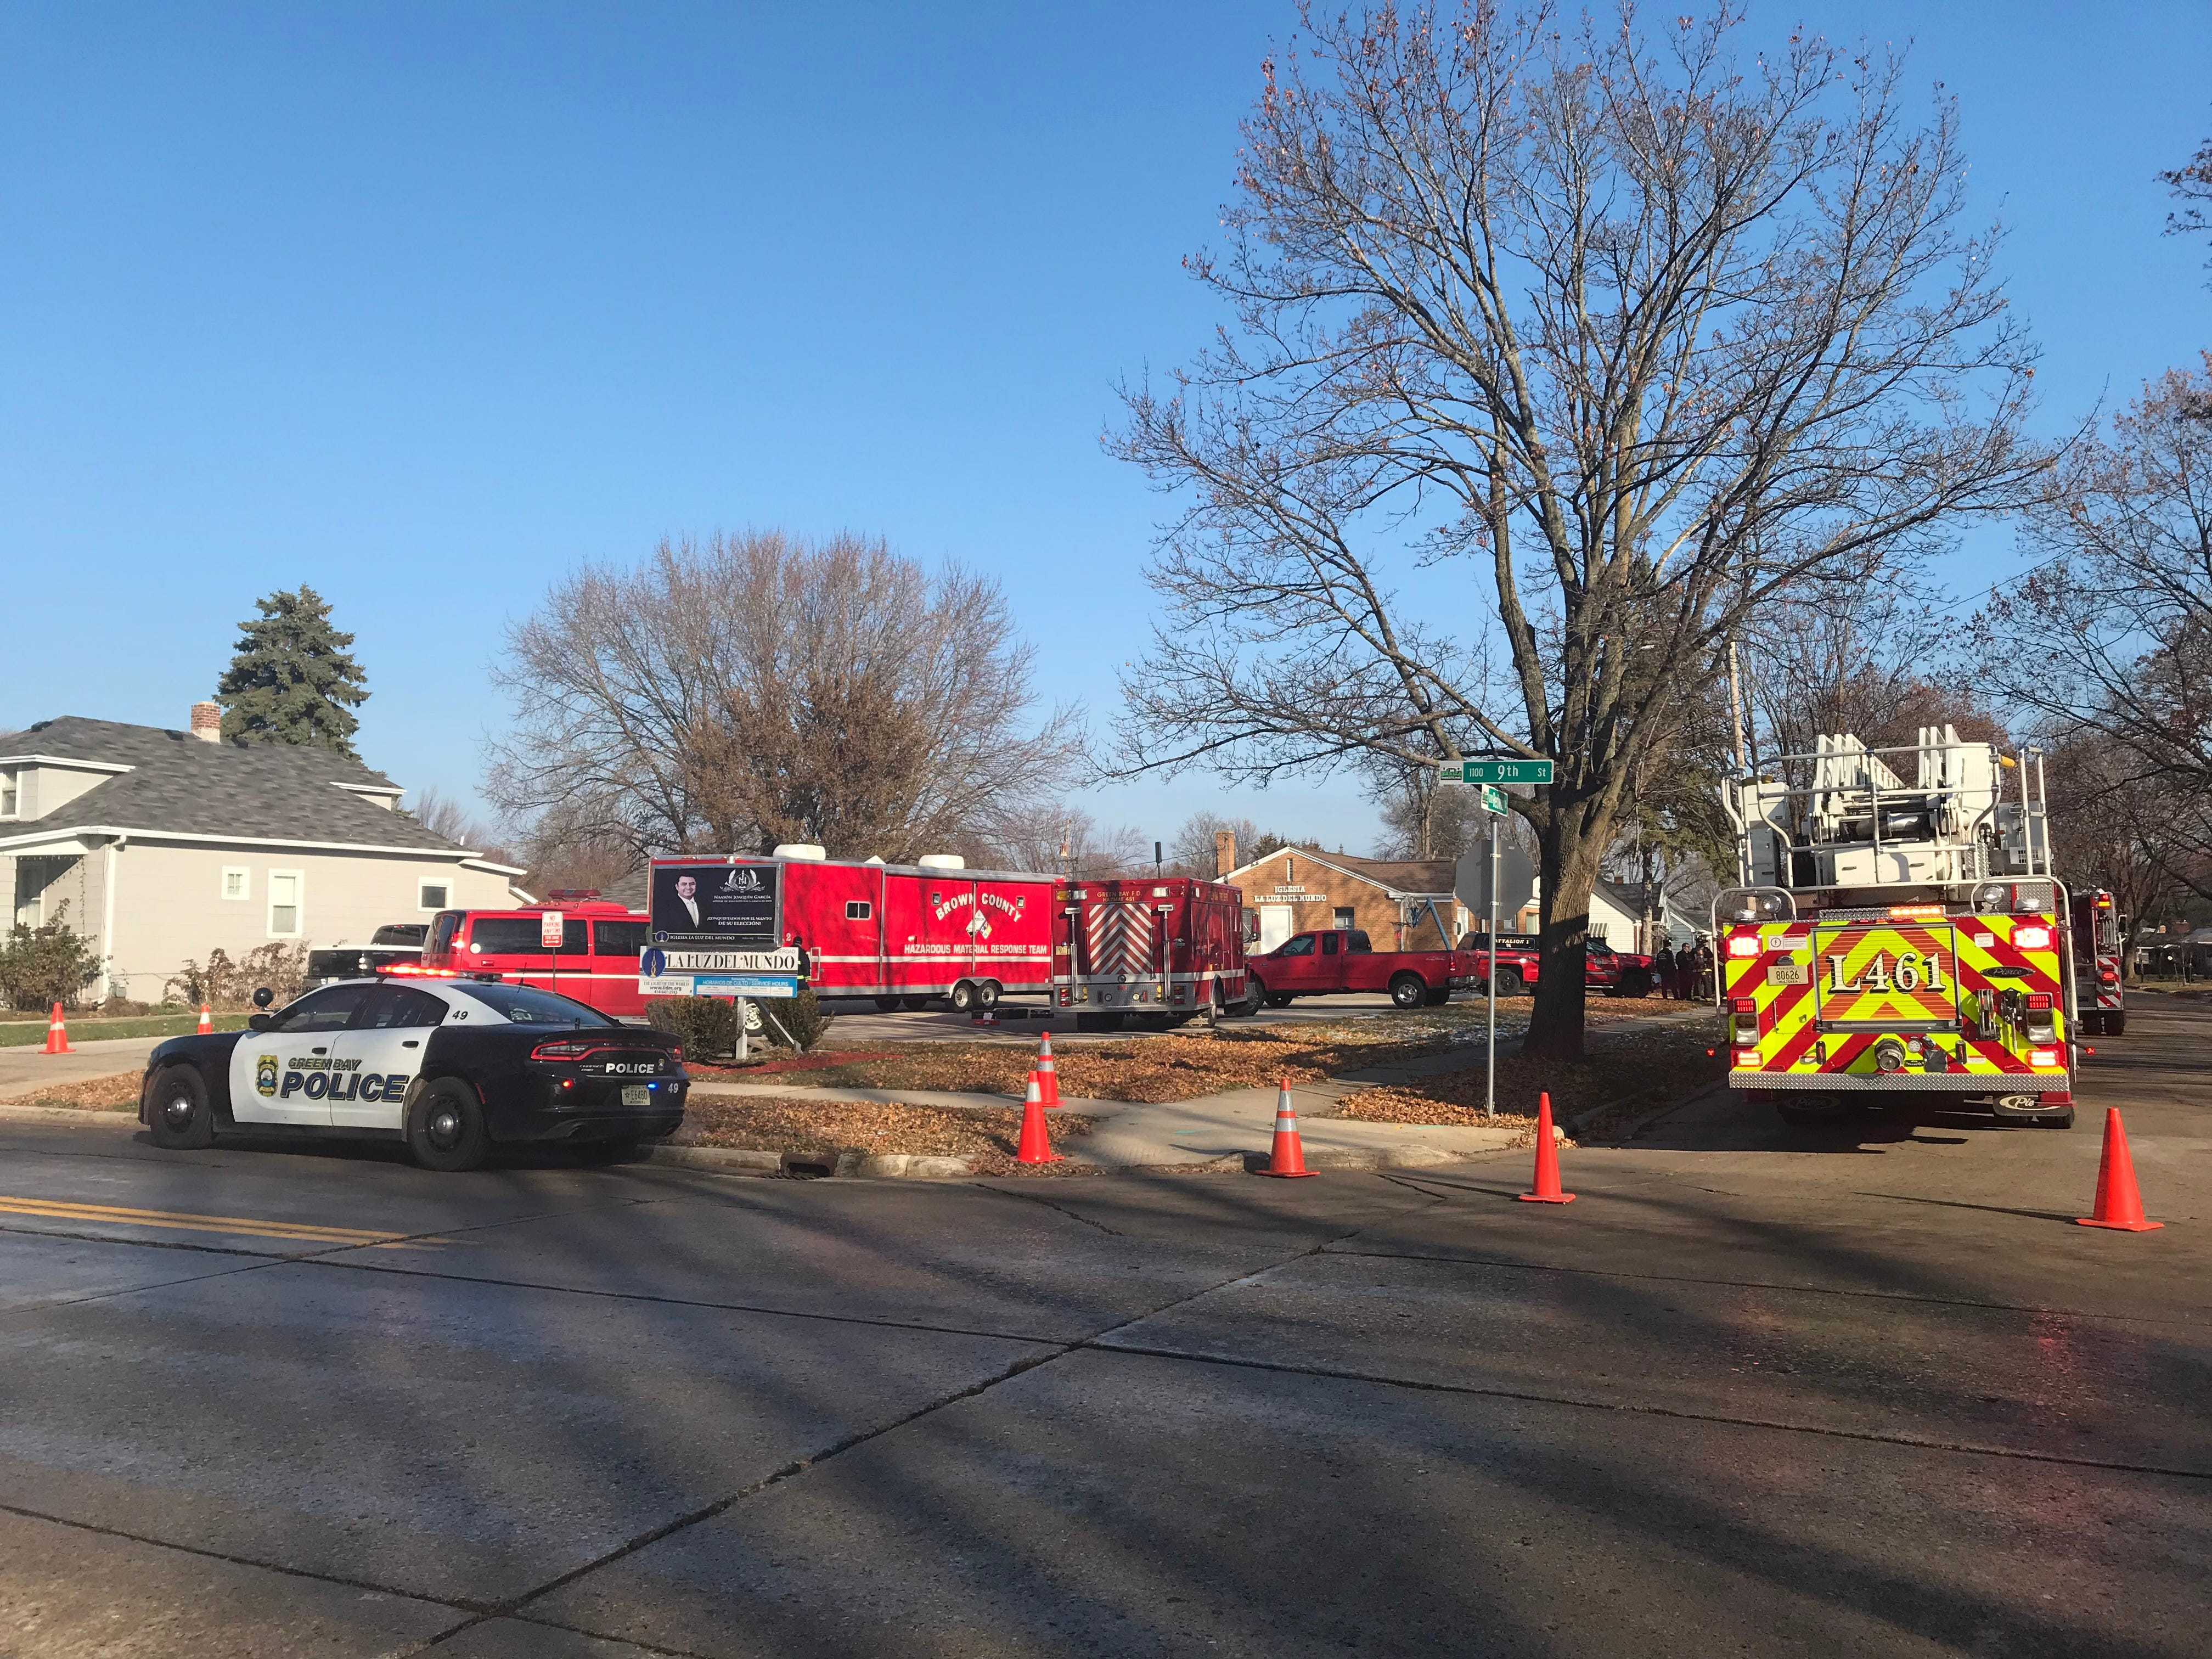 Police find chemicals in westside home; hazardous-materials unit, bomb squad deployed